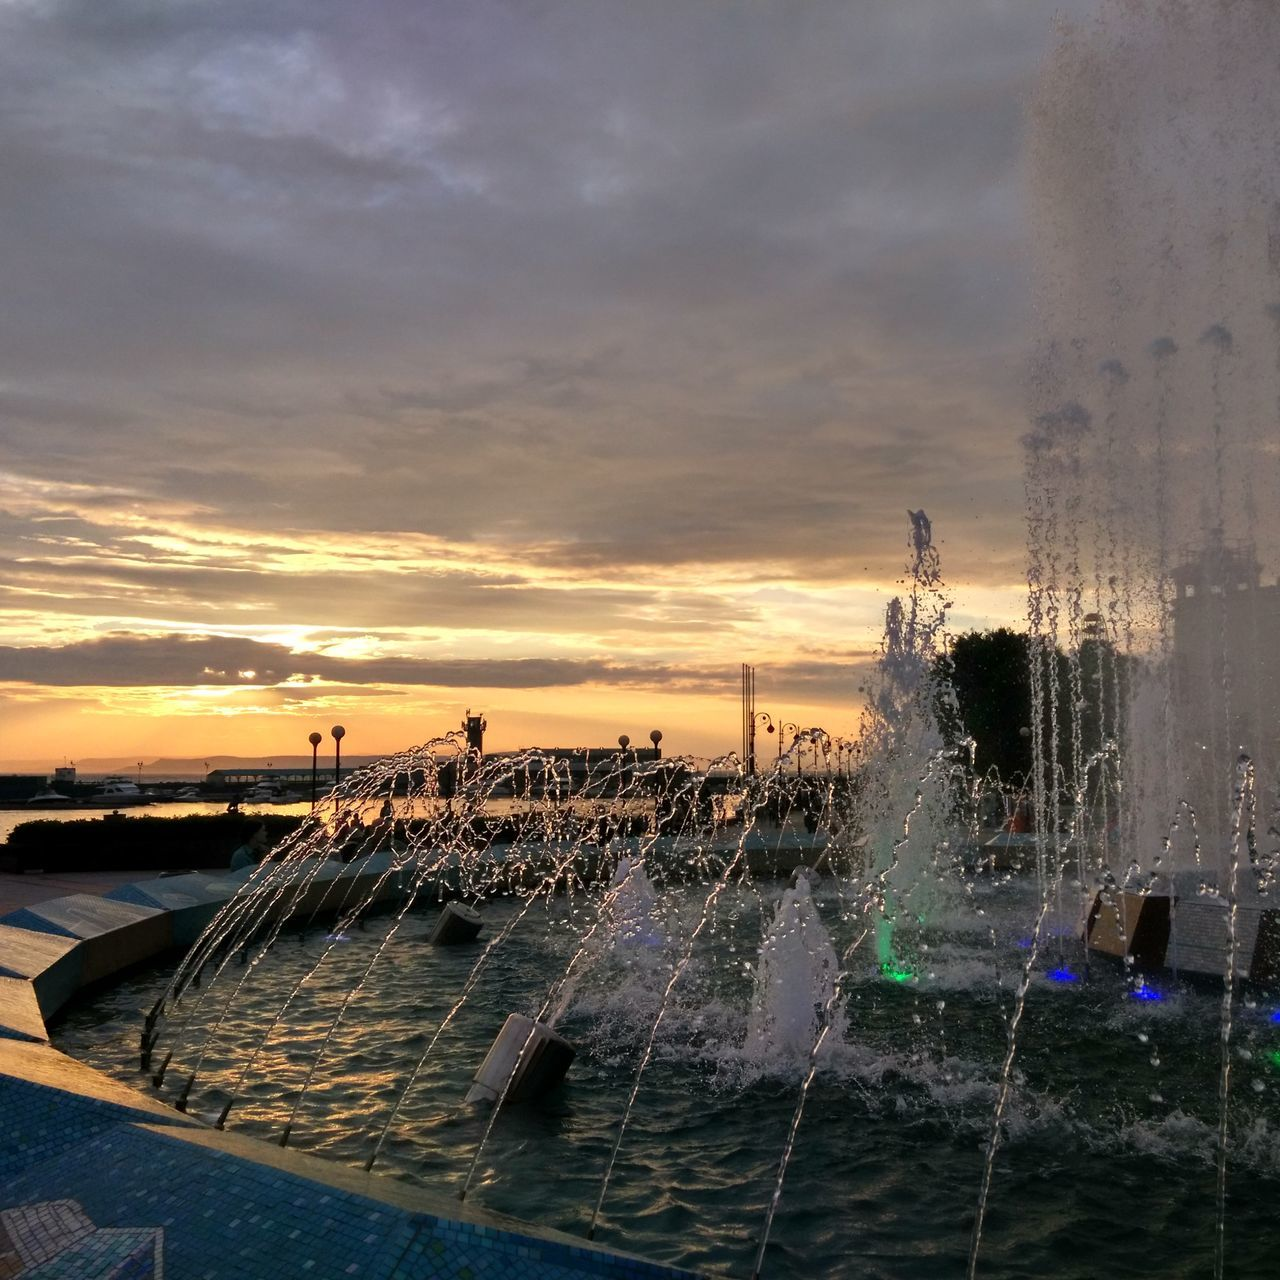 water, motion, sunset, splashing, sky, cloud - sky, long exposure, outdoors, spraying, no people, nature, sea, beauty in nature, scenics, architecture, day